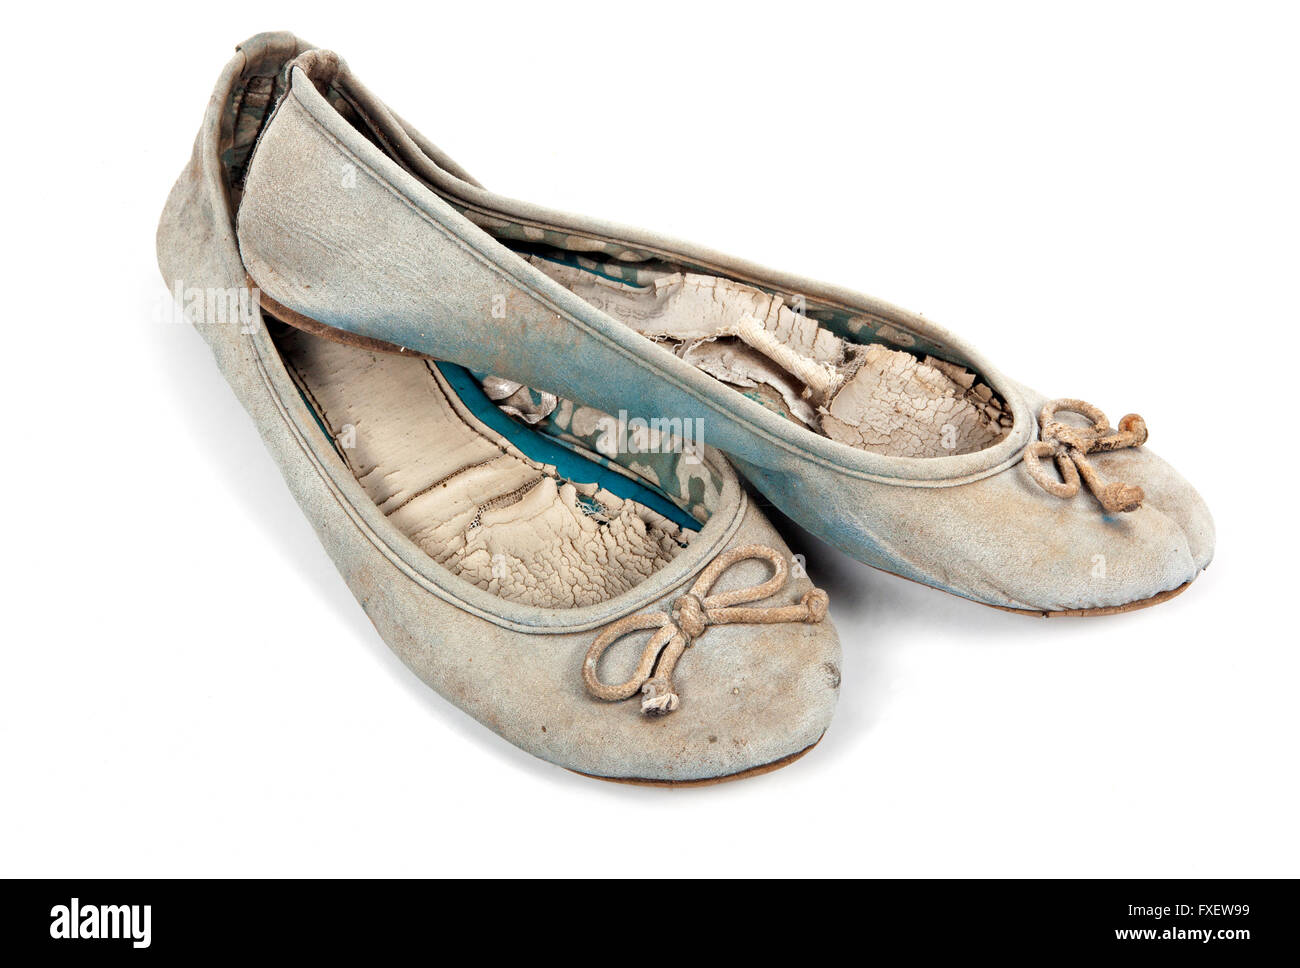 Pair of old well used blue tattered female worn-out shoes on white - Stock Image